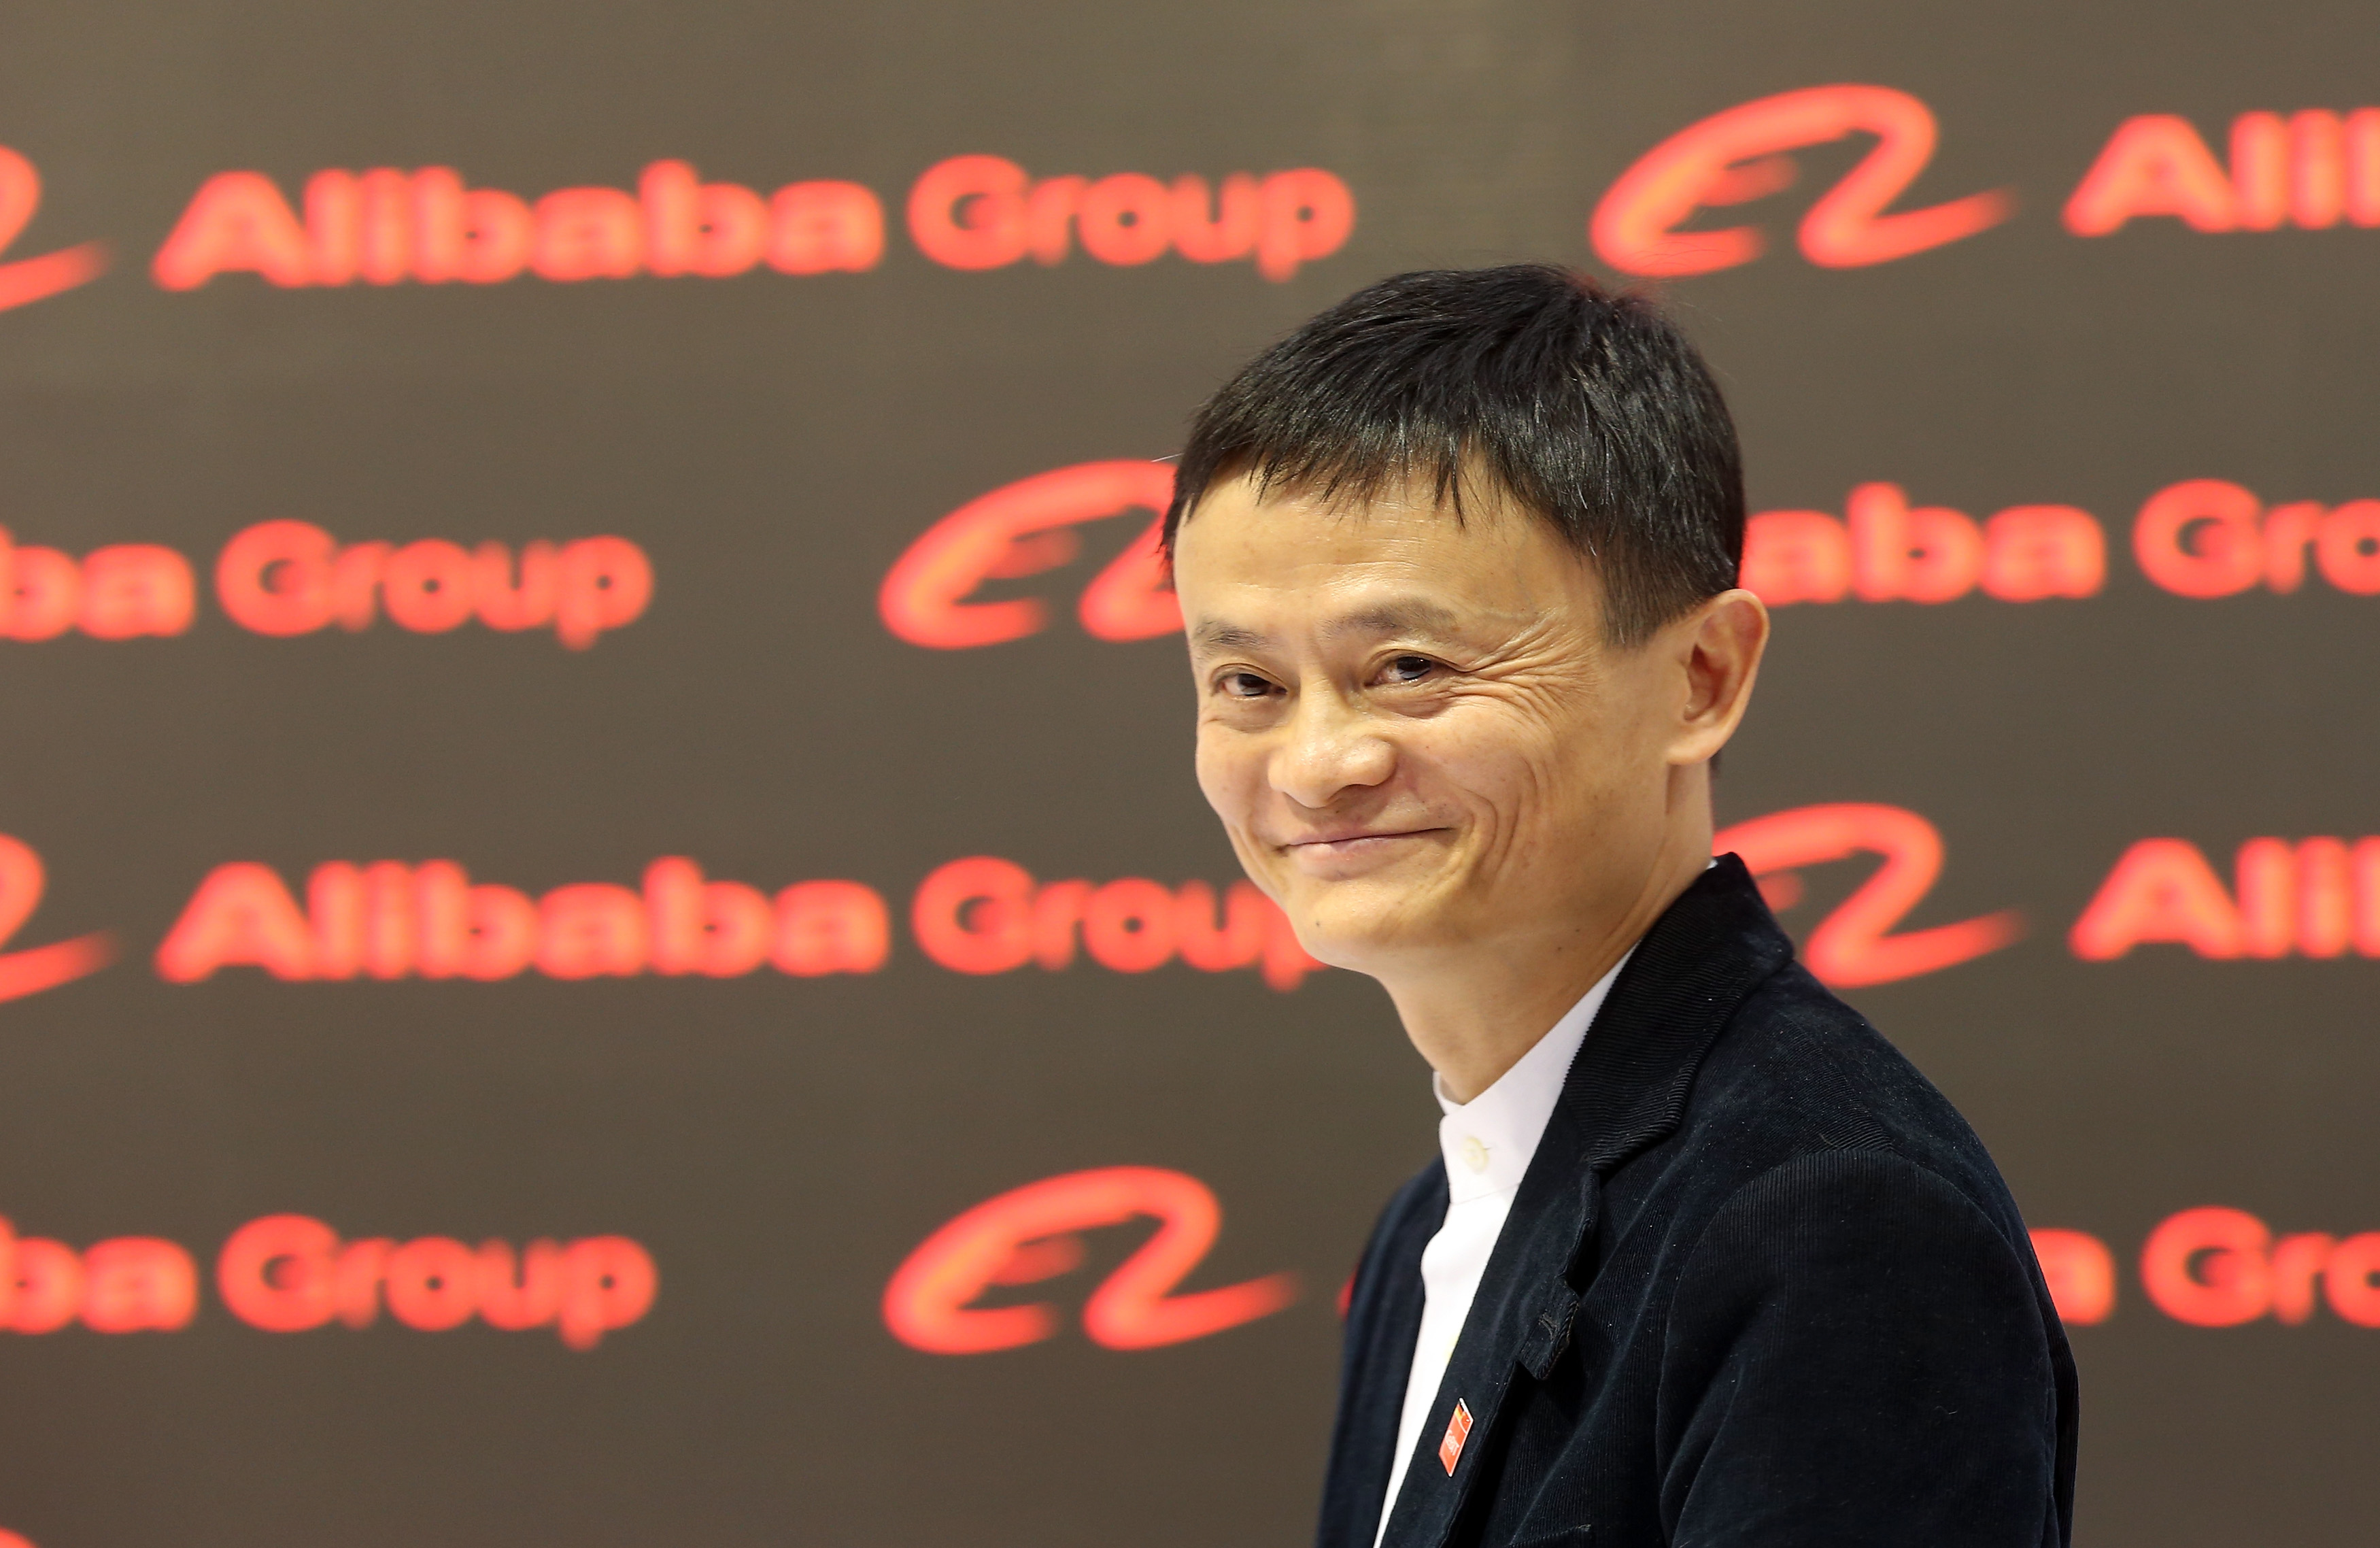 Alibaba Group Executive Chairman Jack Ma  Photo by Sean Gallup/Getty Images